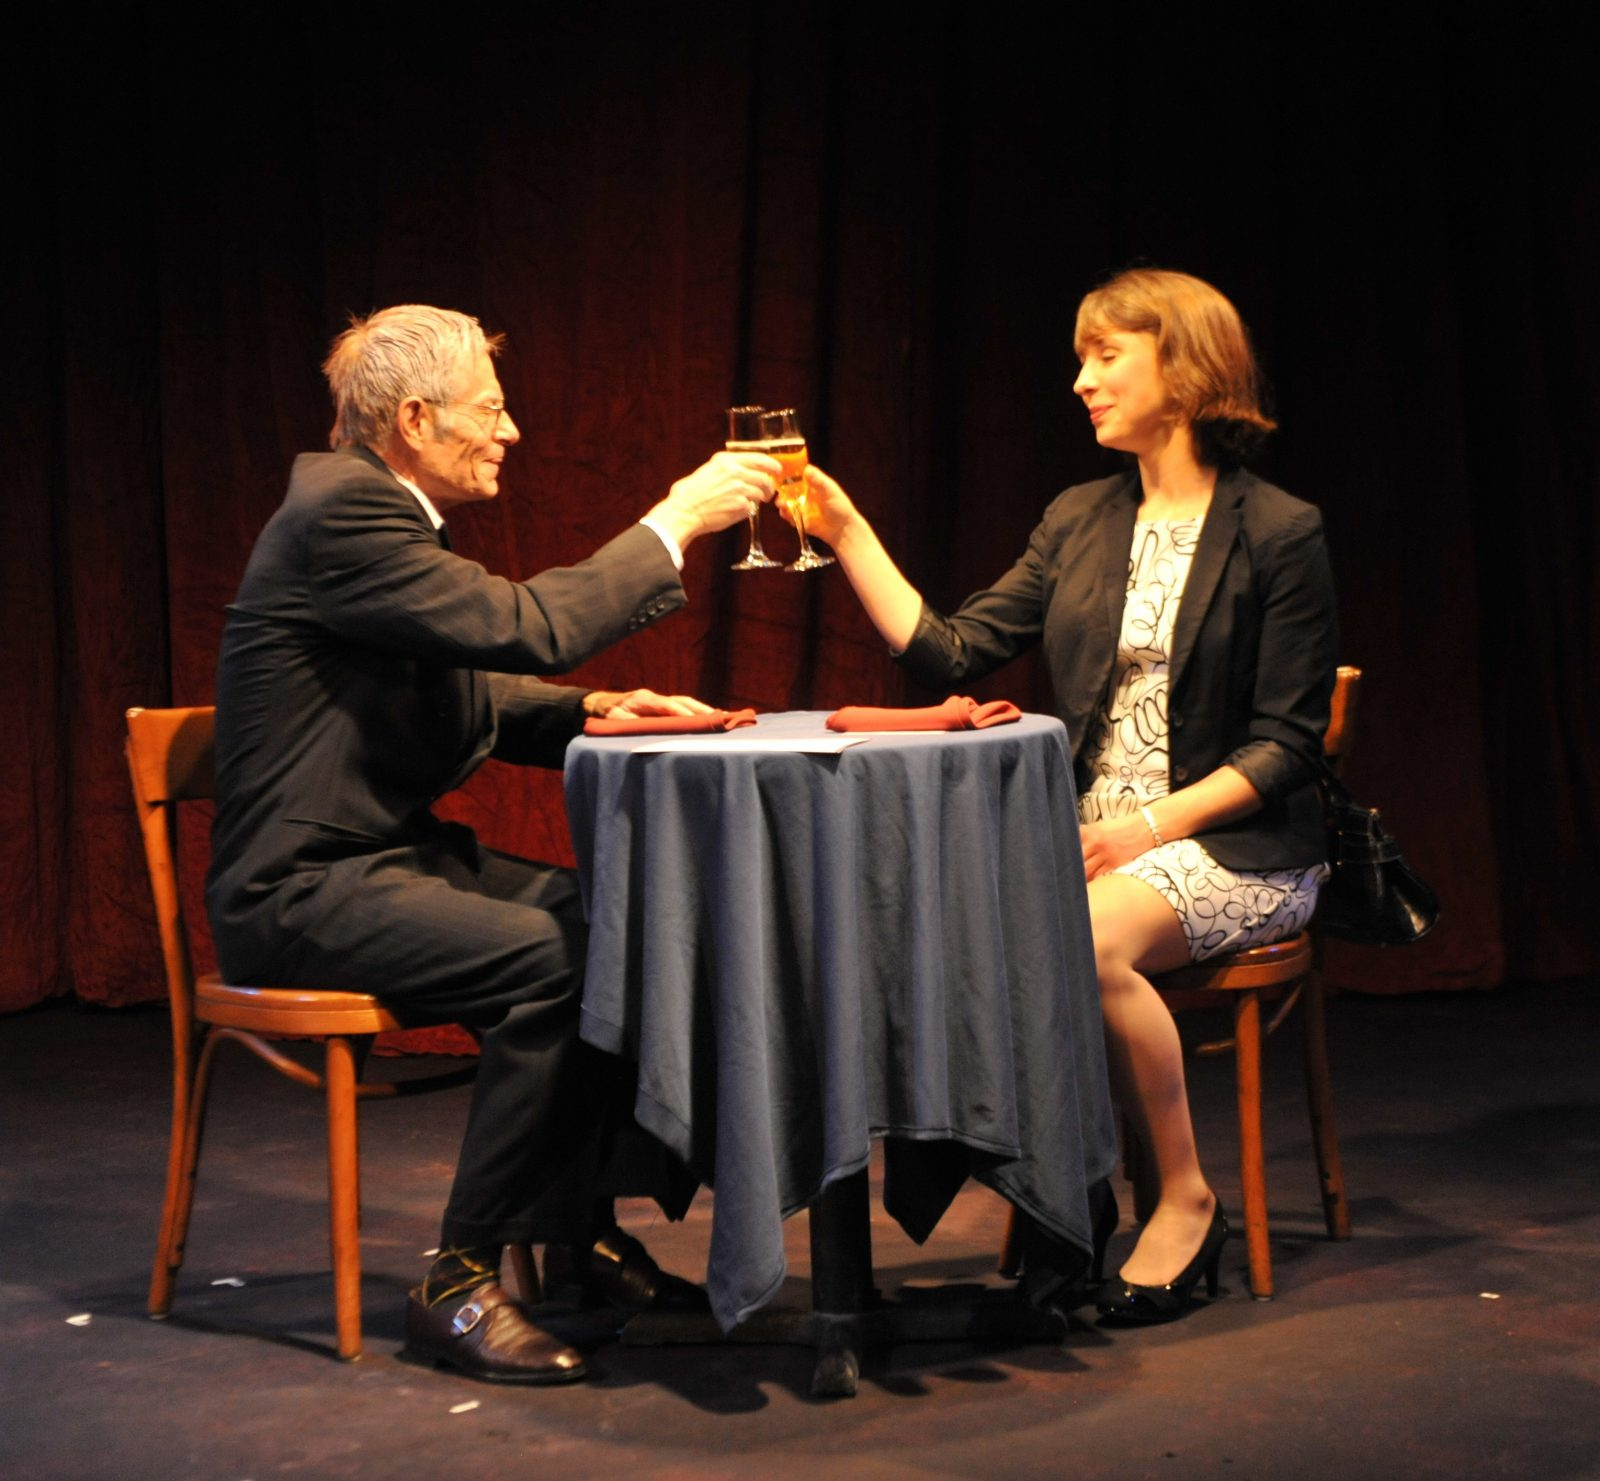 Tom Makar and Bonnie Jean Taylor star in Jewish Repertory Theatre's production of Amy Herzog's play 'After the Revolution.'